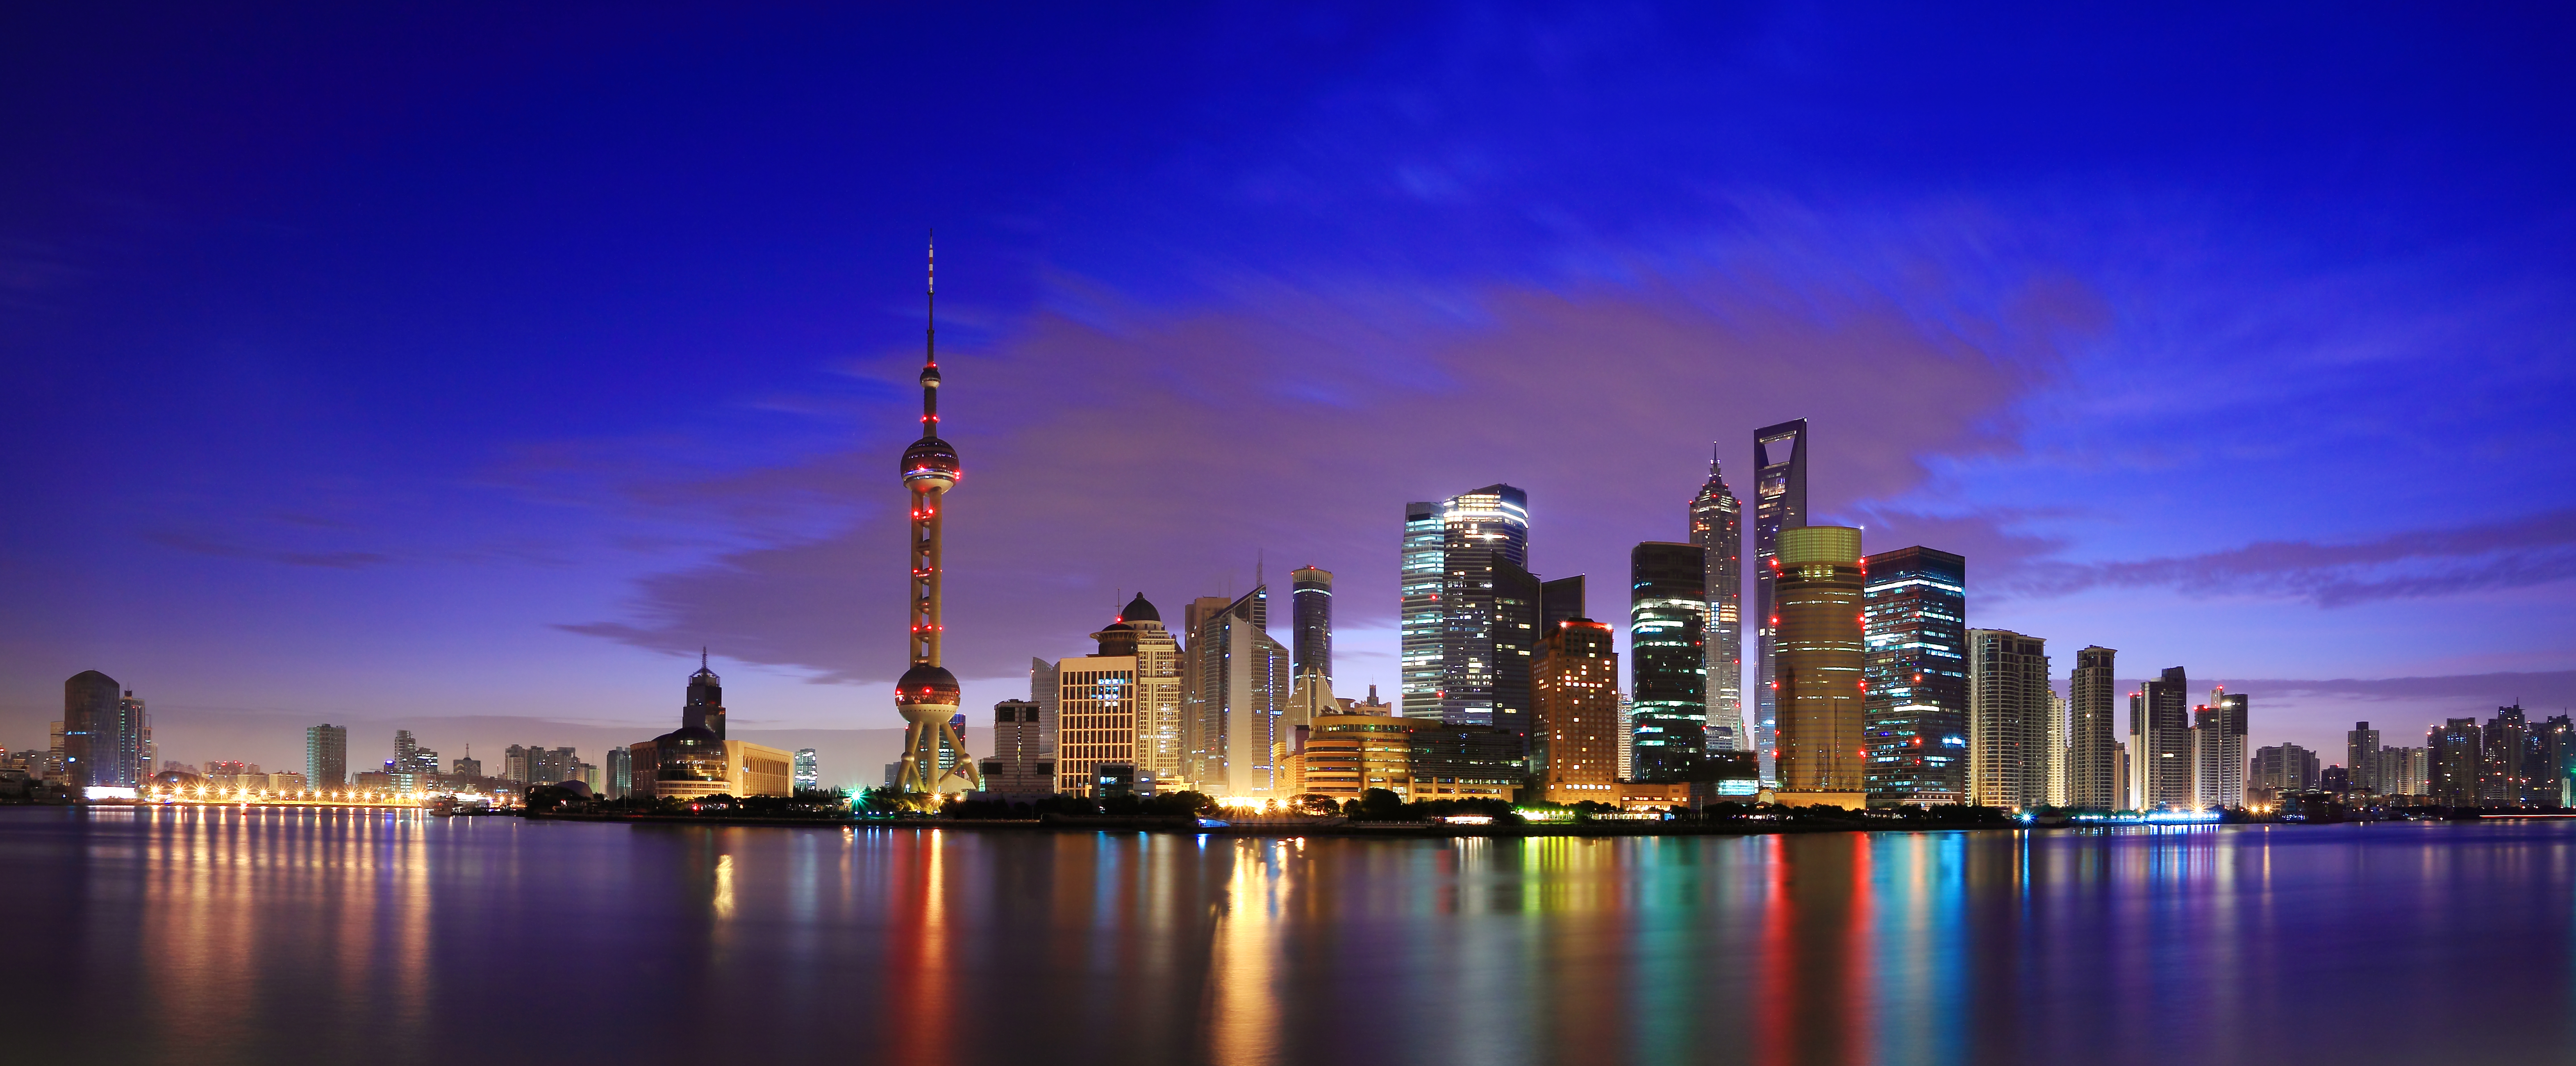 shanghai skyline wallpapers pictures - photo #22